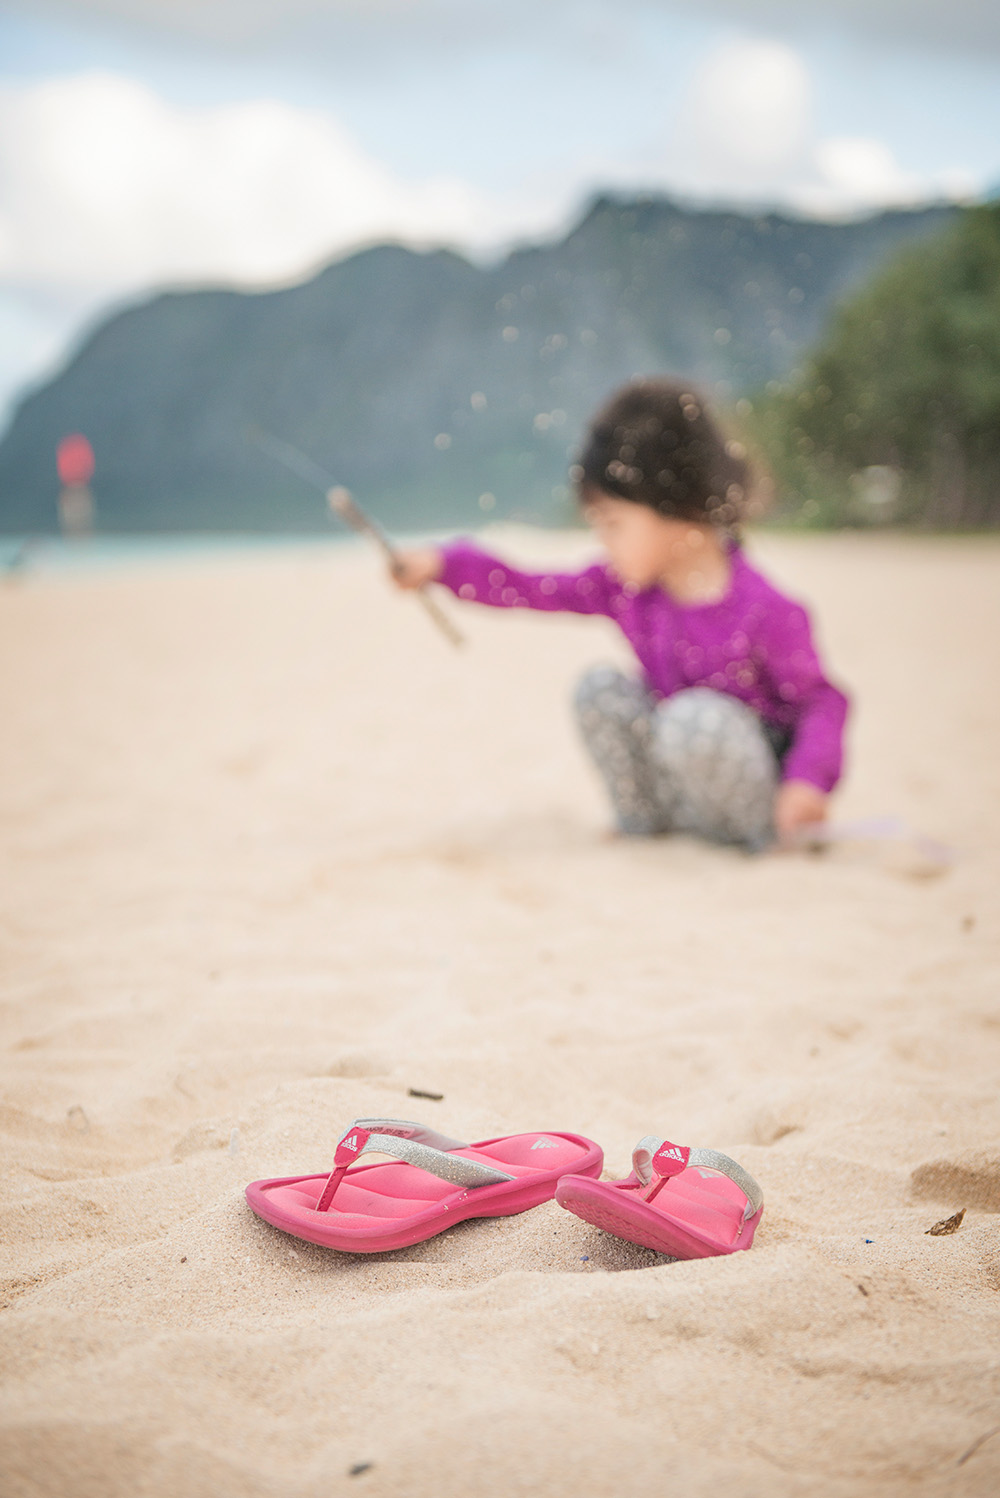 Andrea playing sand, slippers